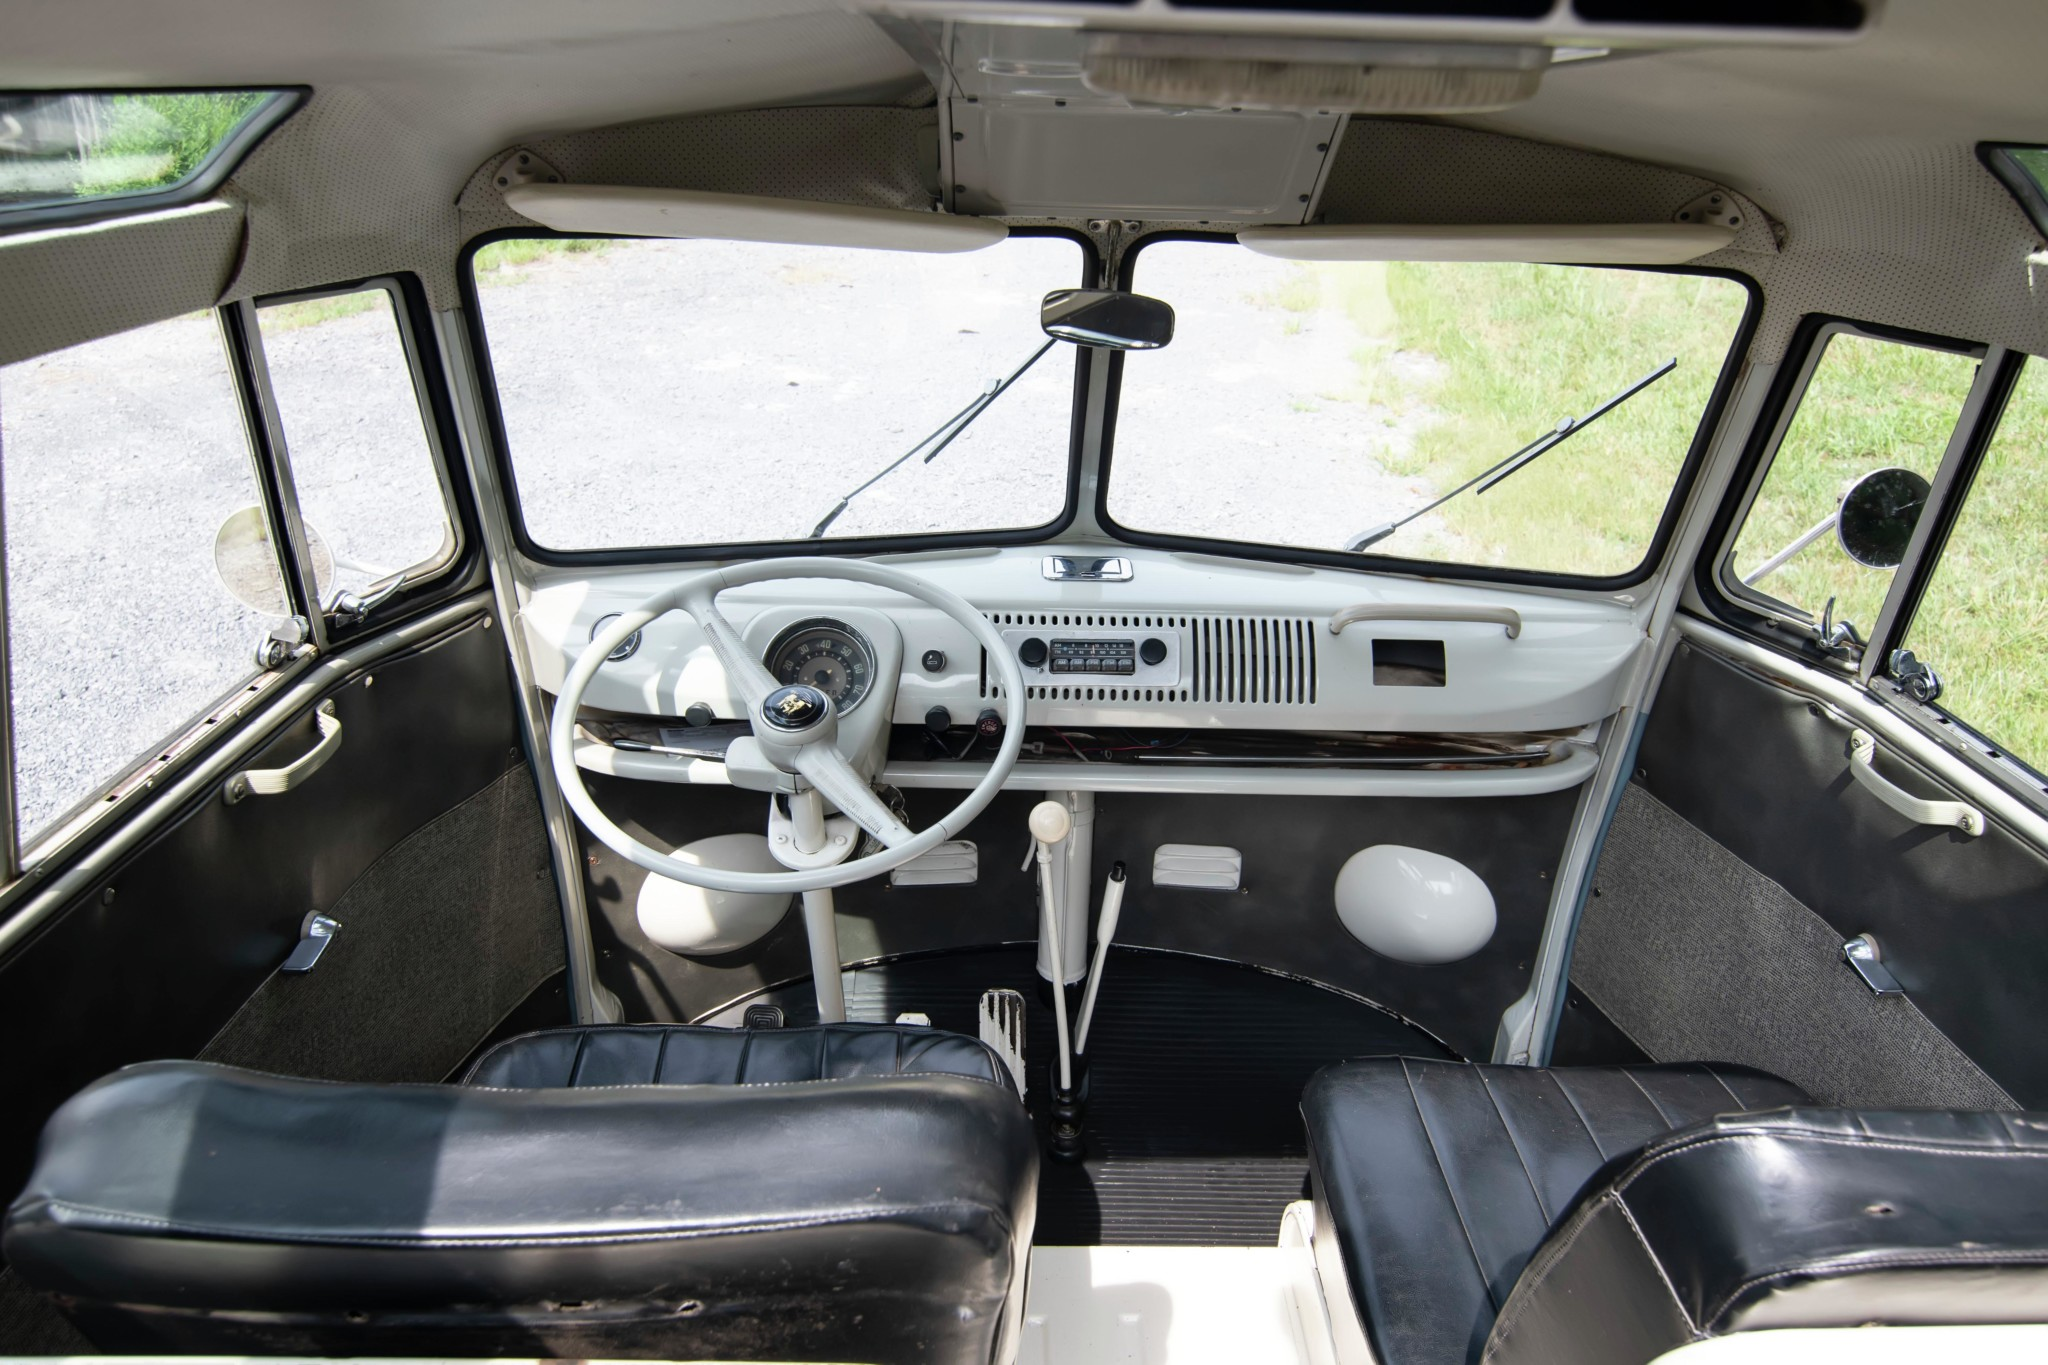 1967_volkswagen_bus_1565561613b6bceceffc6298c0e2Bus-Inside-Looking-Out-Front-2